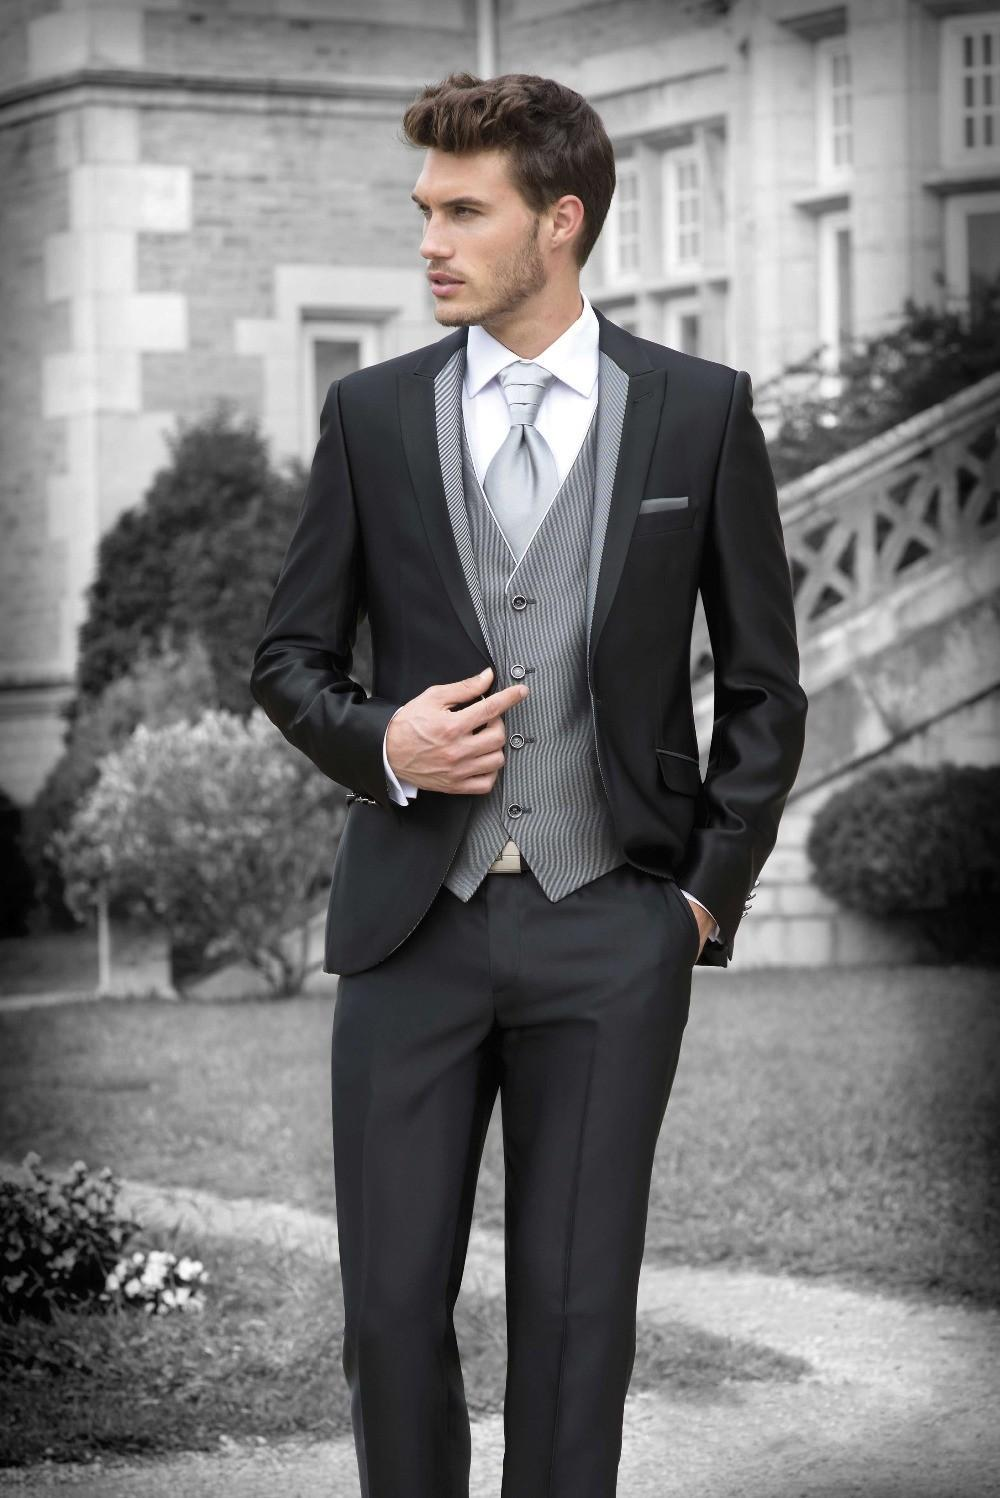 2016 New Style Groom Tuxedos Black Groomsmen Peak Lapel Best Man ...